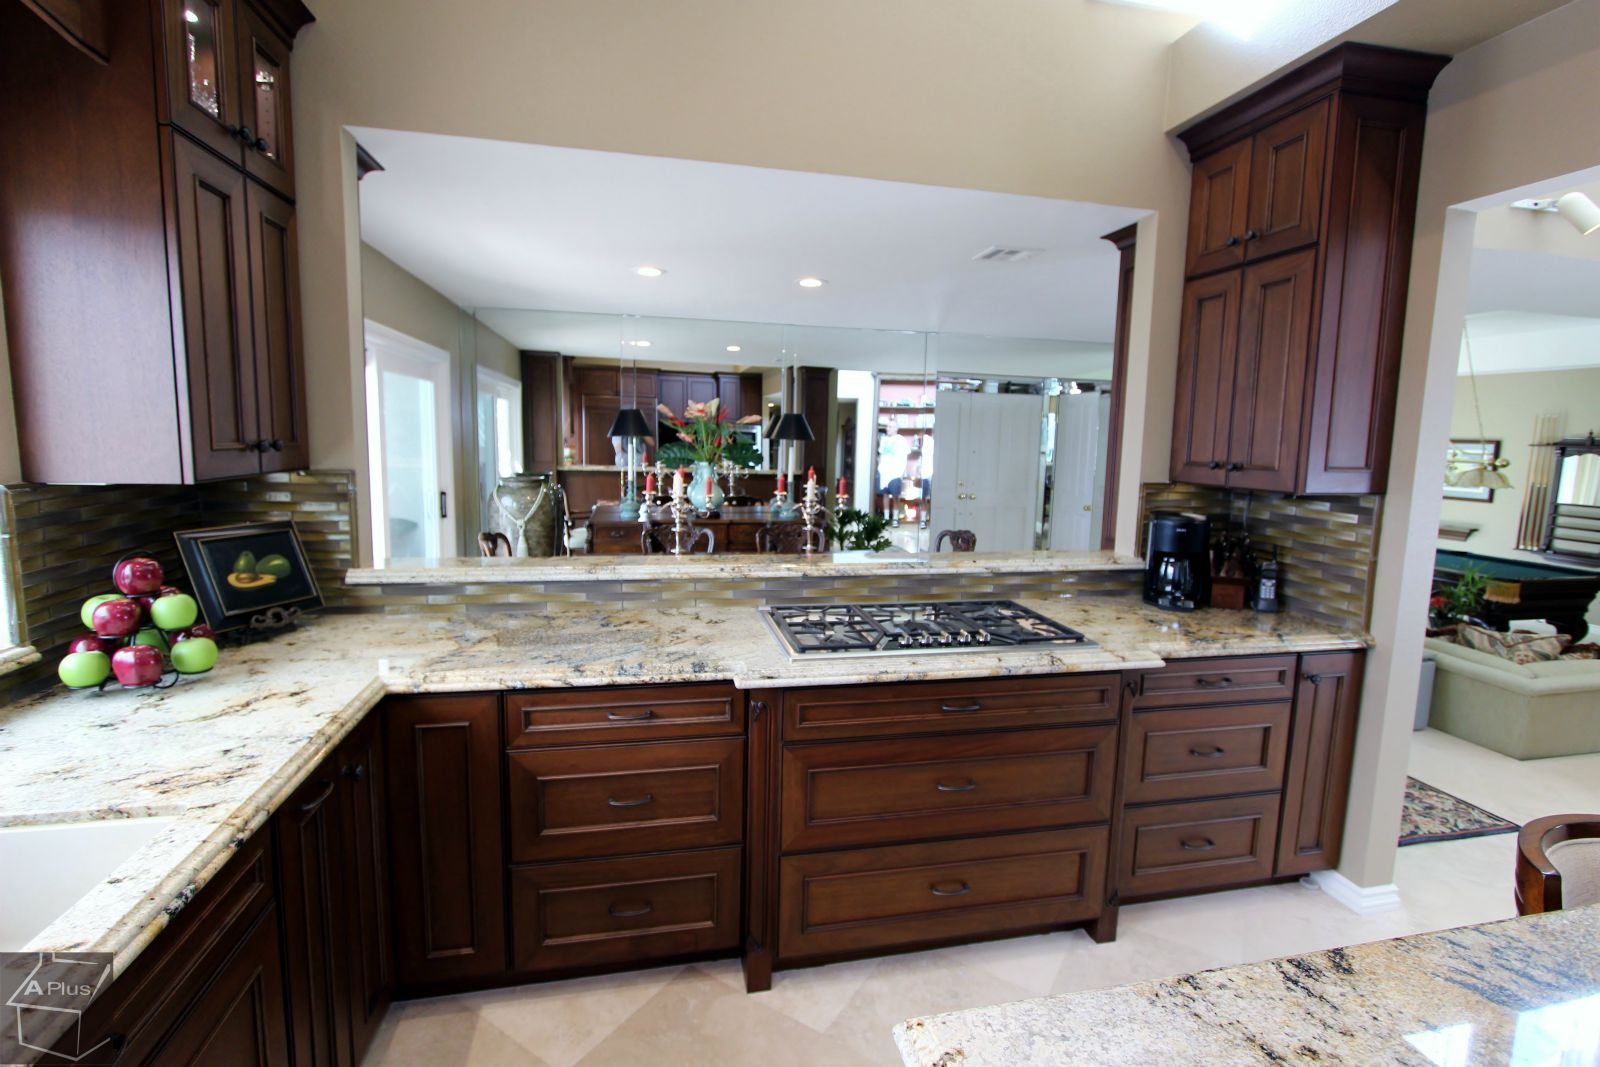 Kitchen Designer Orange County Captivating Traditional Style Kitchen #remodel In Irvine Orange County  87 Review